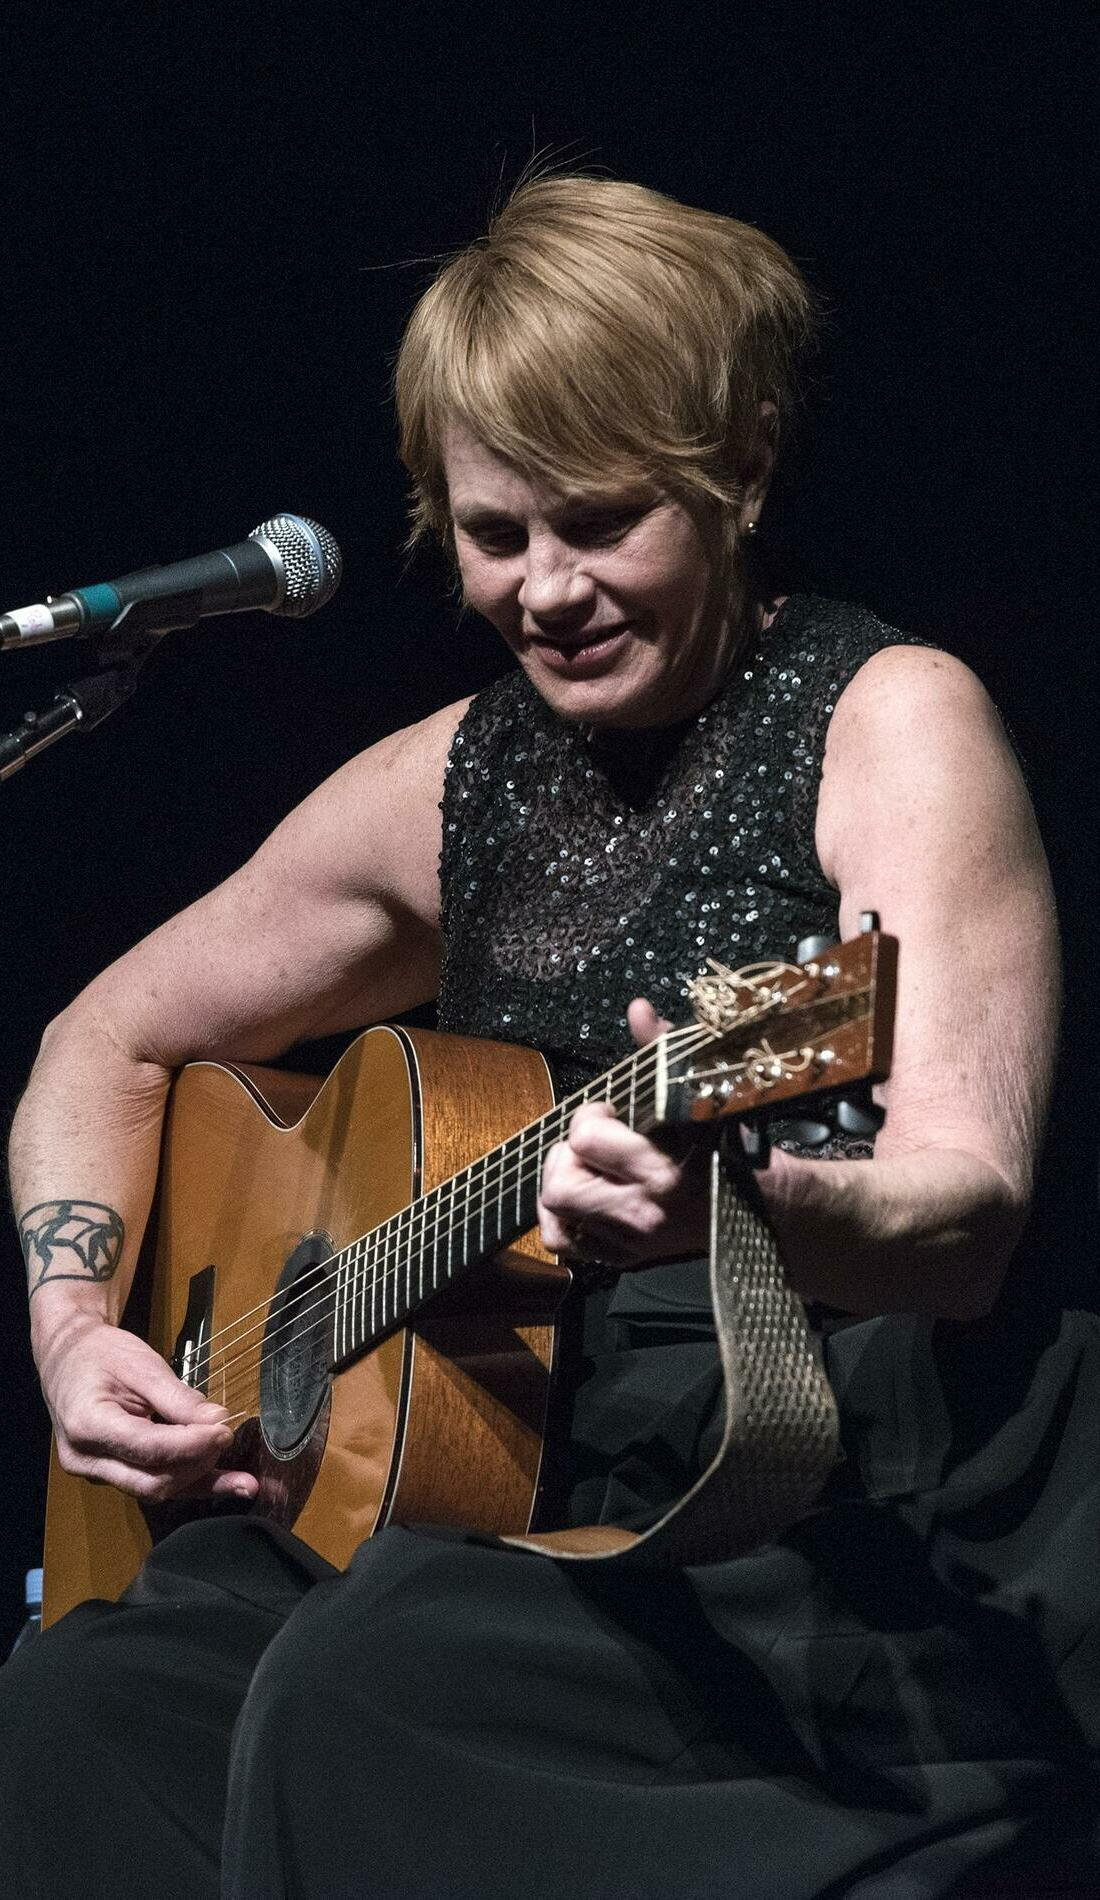 A Shawn Colvin live event